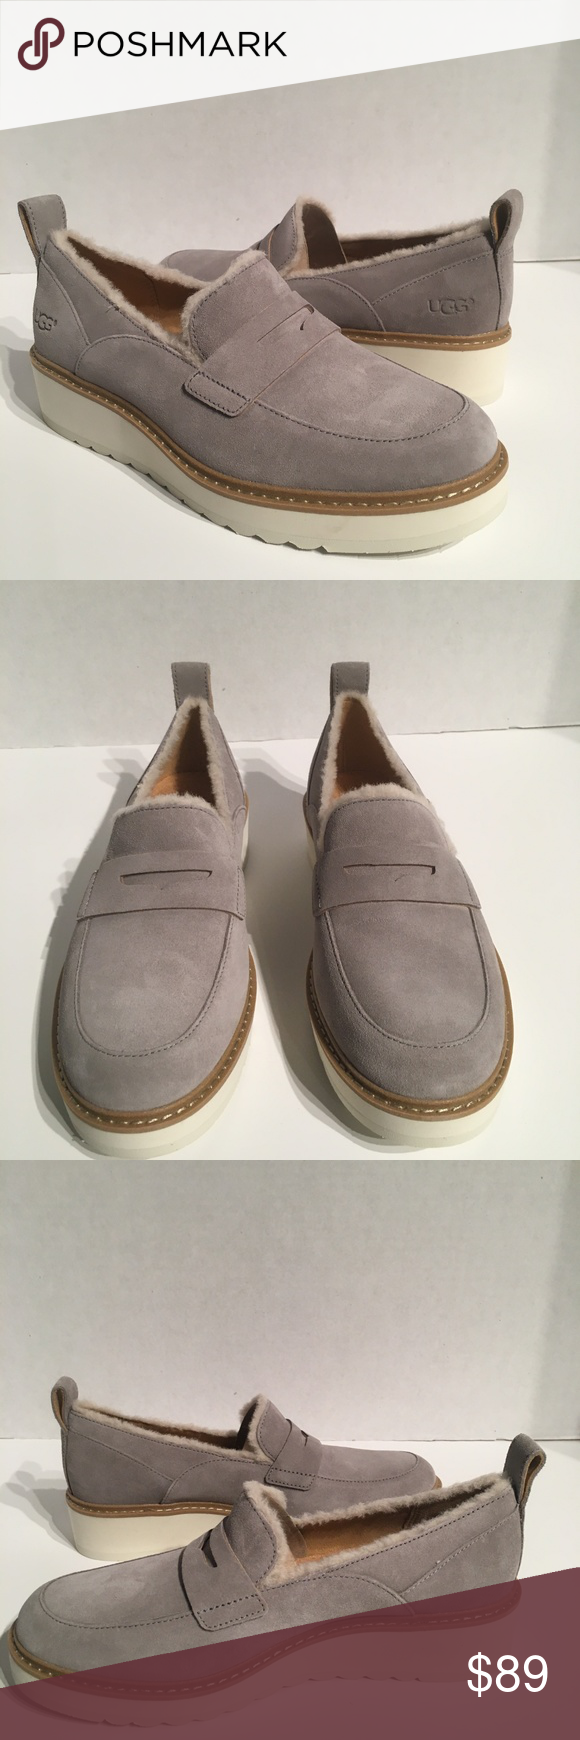 d23bdb46d2b Ugg Atwater Spill Seam Platform Loafer Grey Shoe New with box Buyers are  responsible for providing